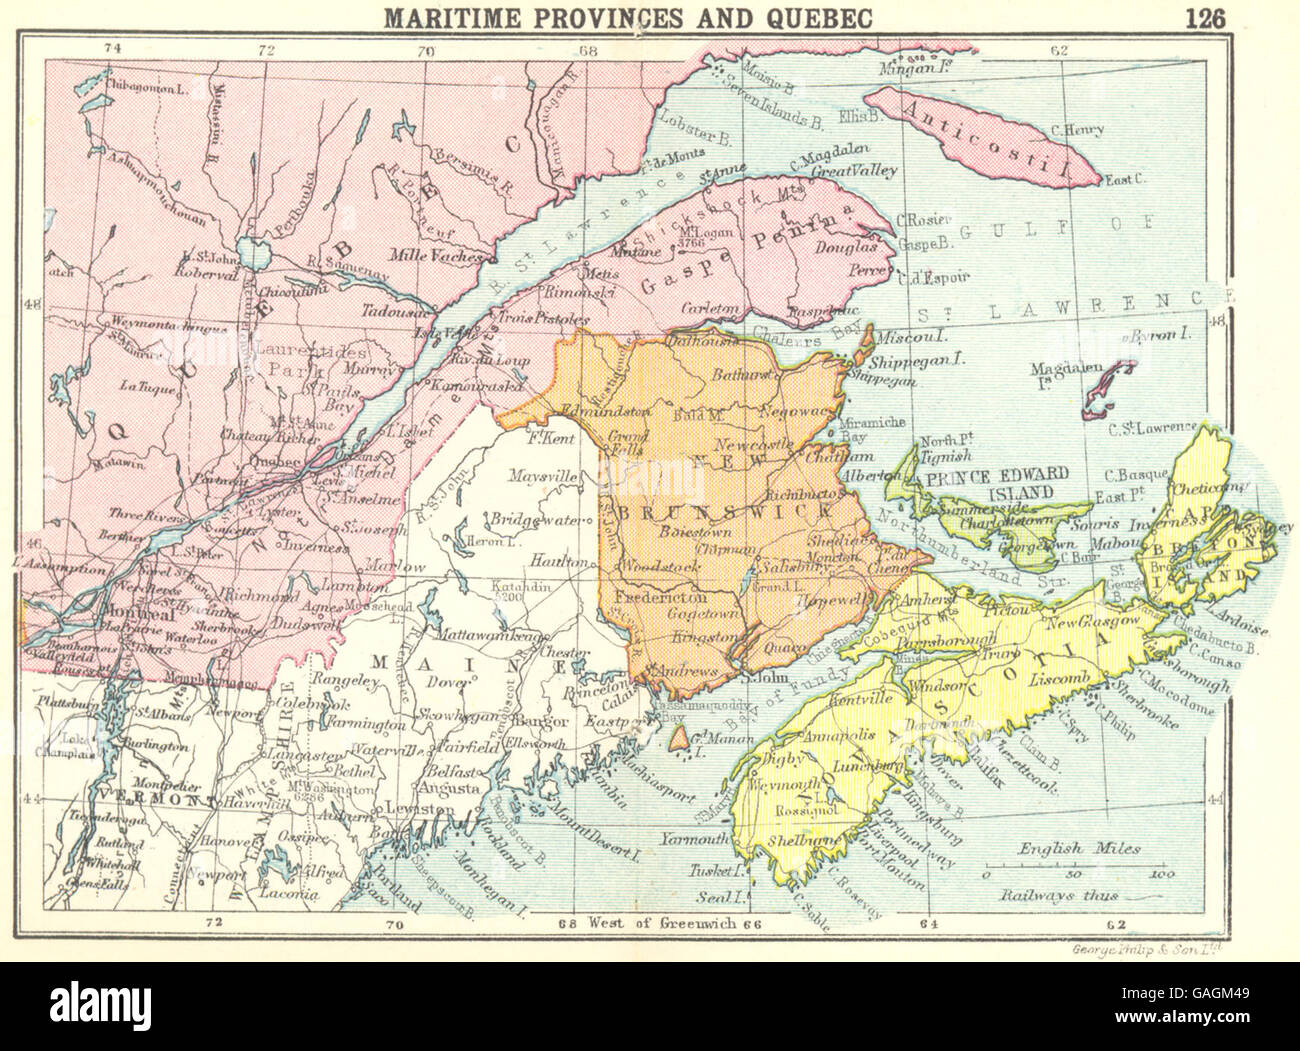 Canada Maritime Provinces And Quebec Small Map 1912 Stock